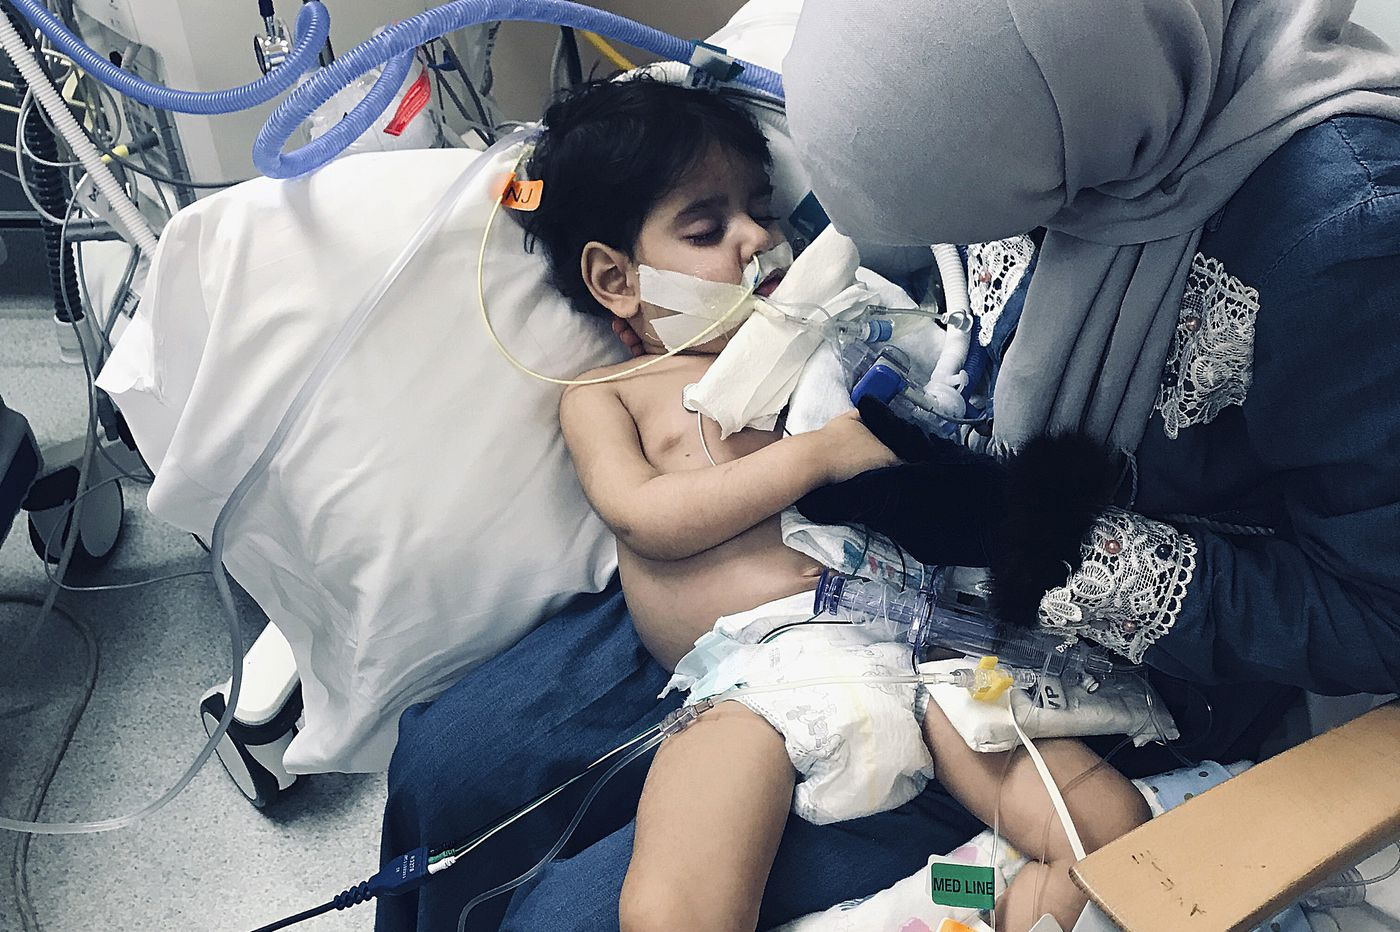 Yemeni mom overcomes travel ban to finally hold dying son